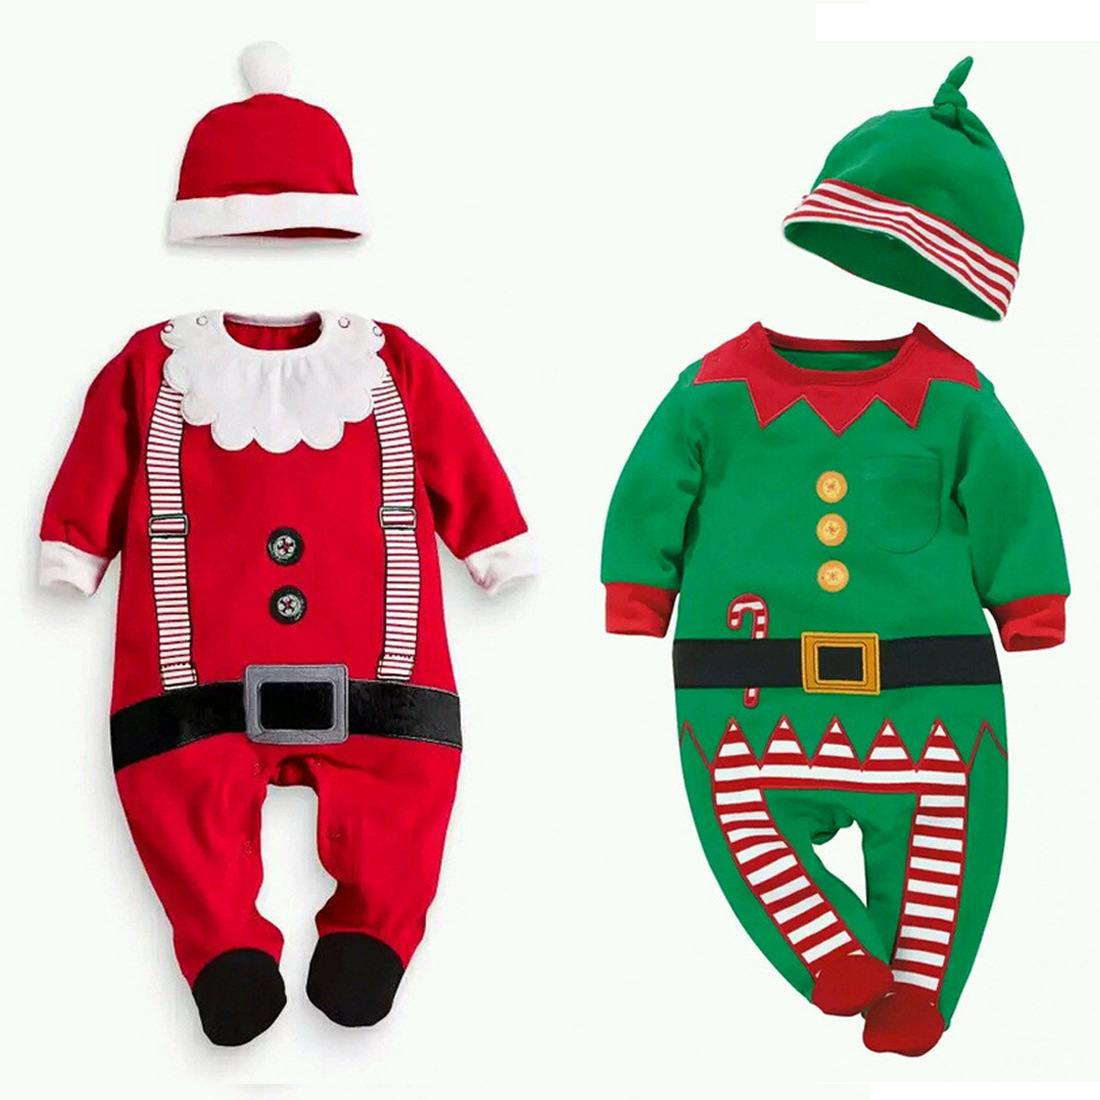 Fashion Christmas Baby Rompers Cotton Newborn Clothes Long Sleeve Girl Boy Costume Climbing Clothing Infant Coverall Jumpsuit 2016 autumn newborn baby rompers fashion cotton infant jumpsuit long sleeve girl boys rompers costumes baby clothes